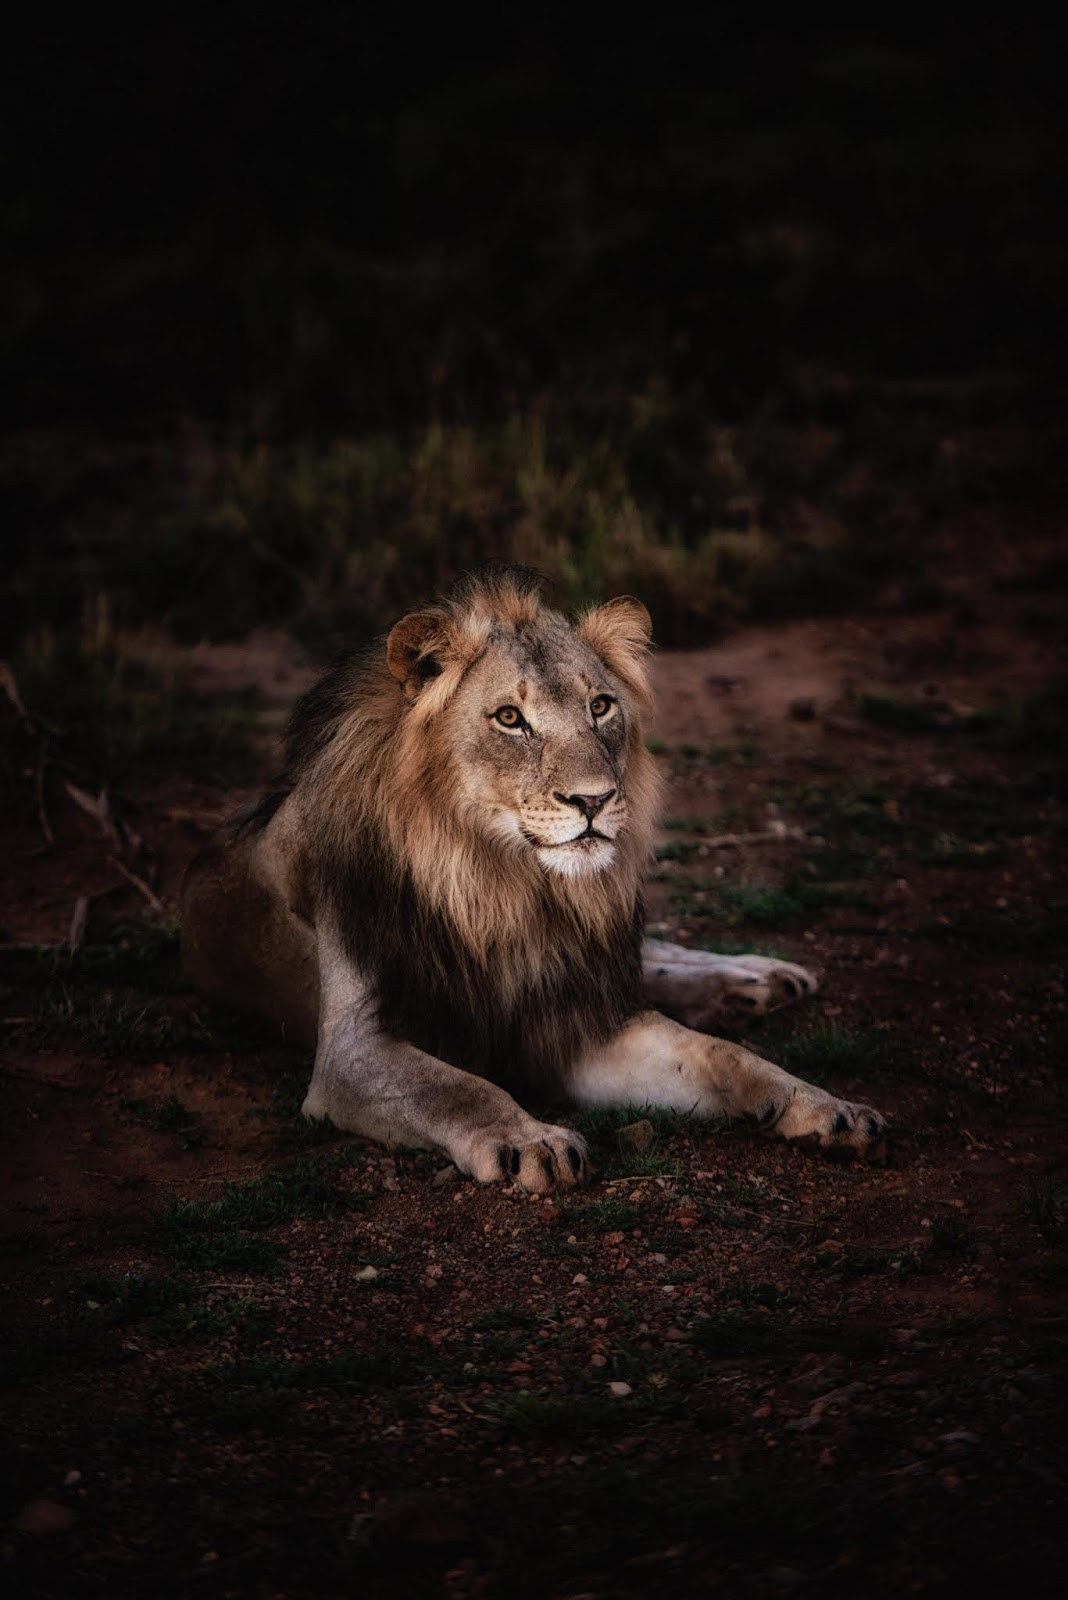 Male Lion sitting in calm position images